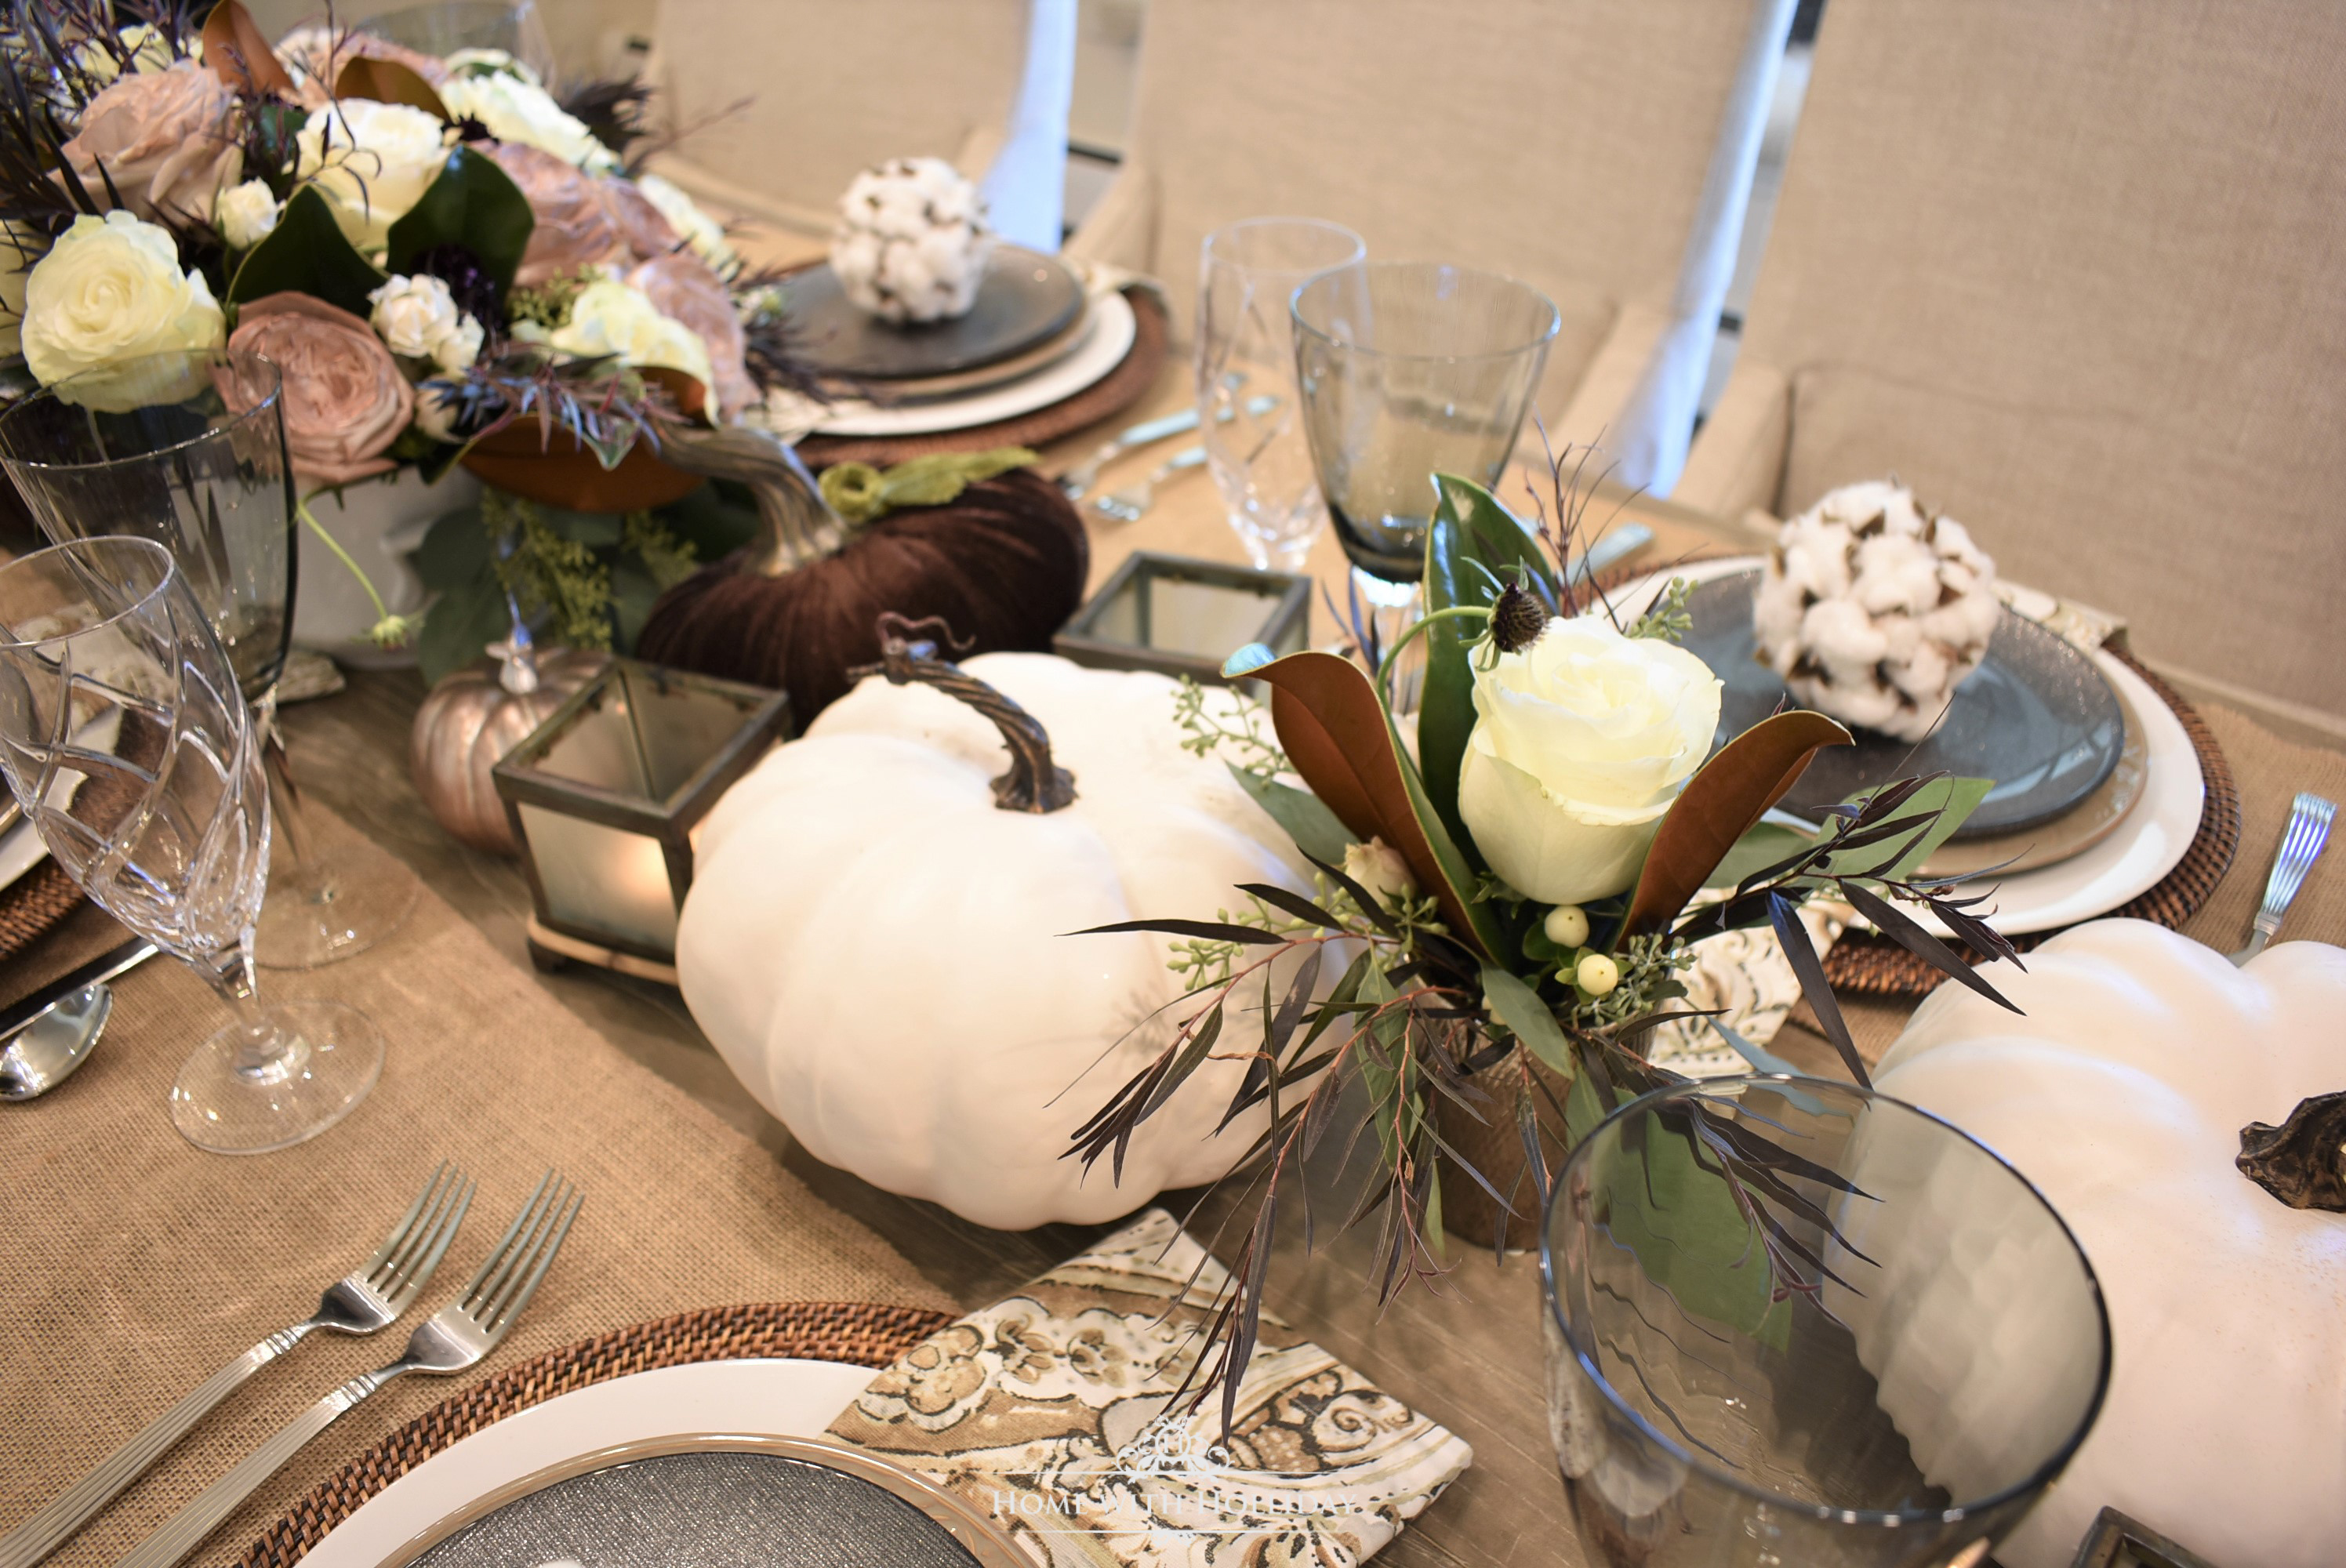 Florals for a Fall Table Setting with Brown and White Pumpkins